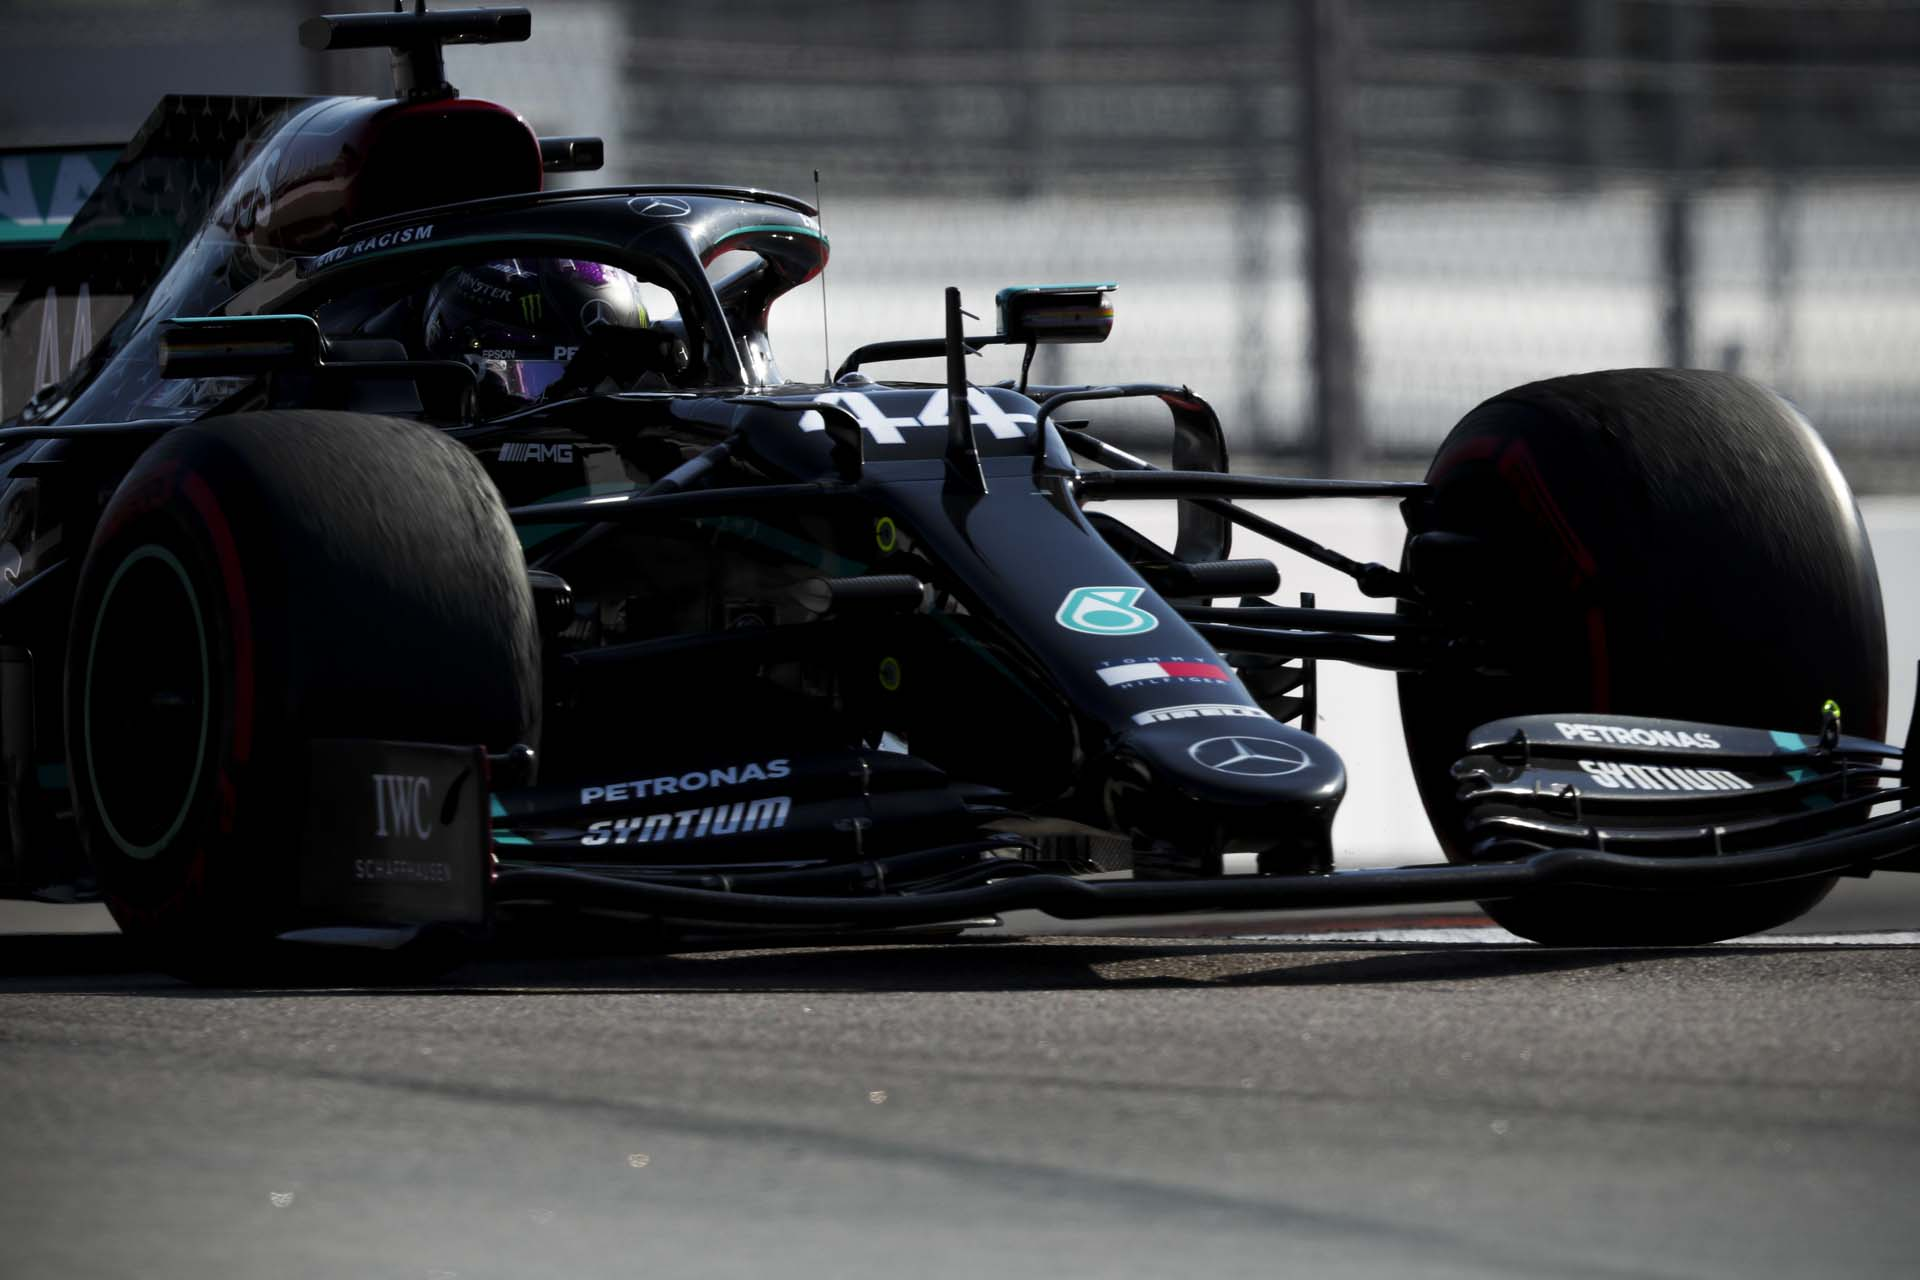 2020 Russian Grand Prix, Sunday - LAT Images